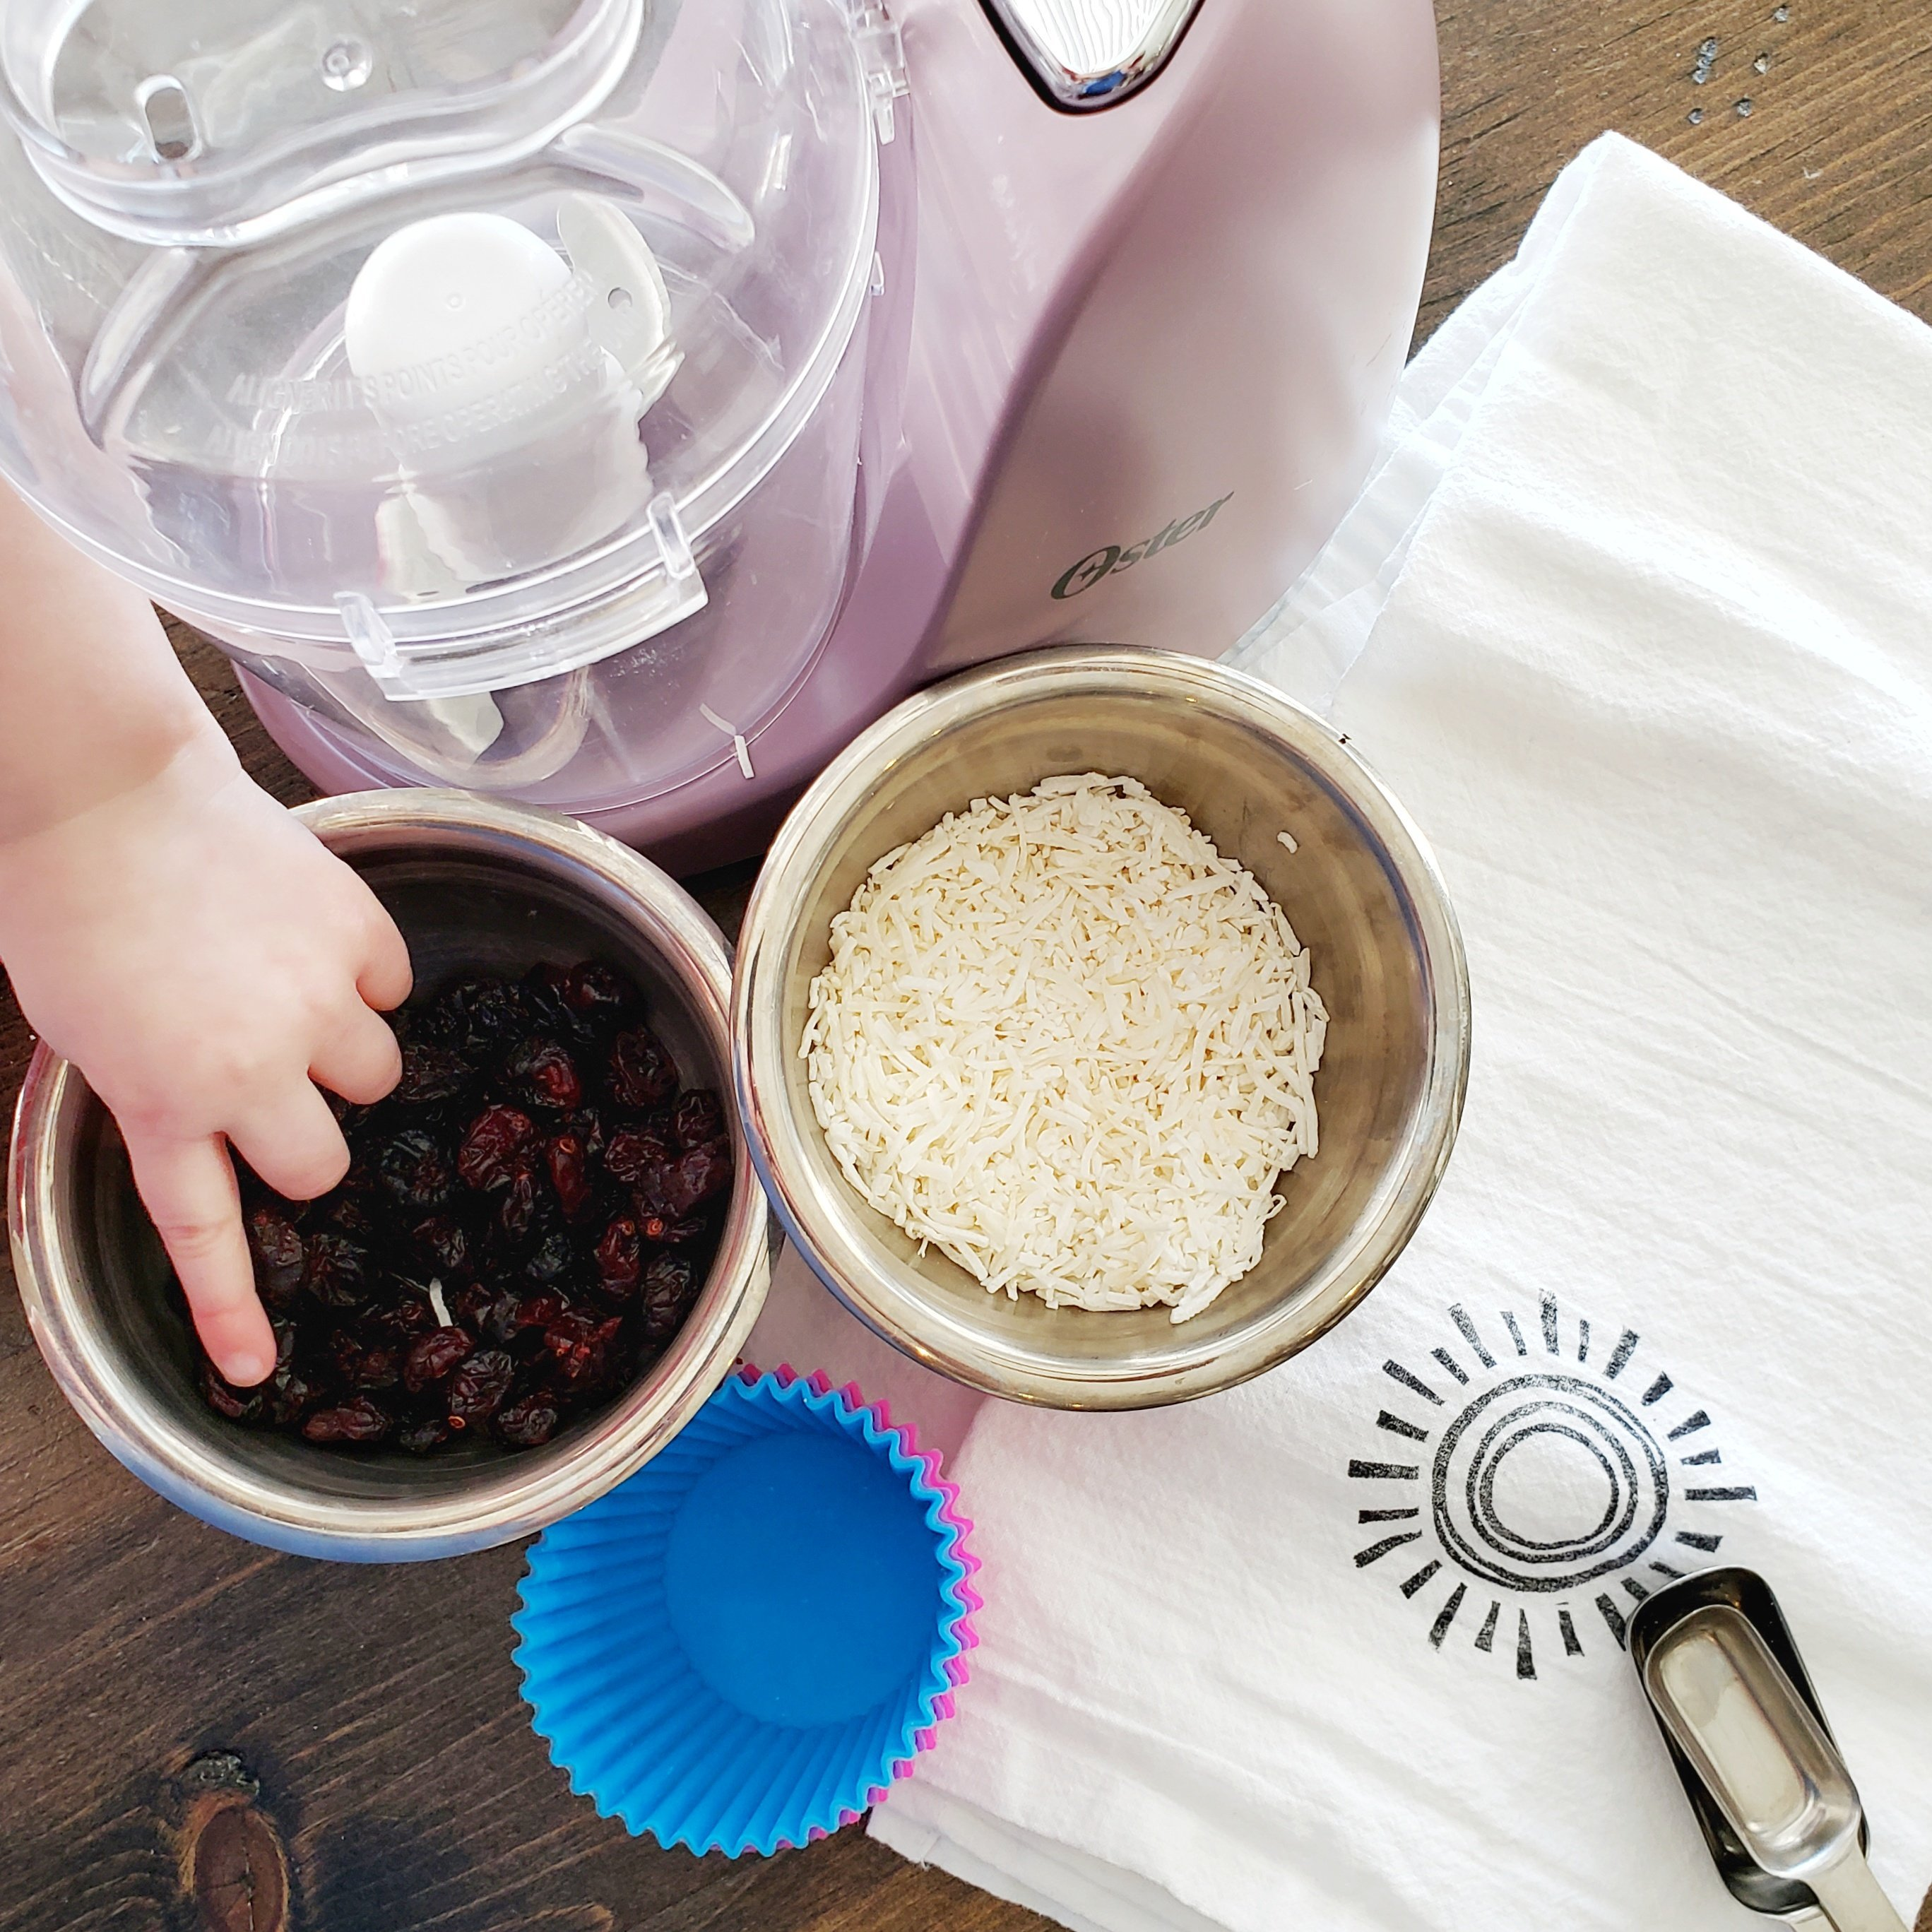 Don't F with my Muffins - Kids approved recipe sure to please!